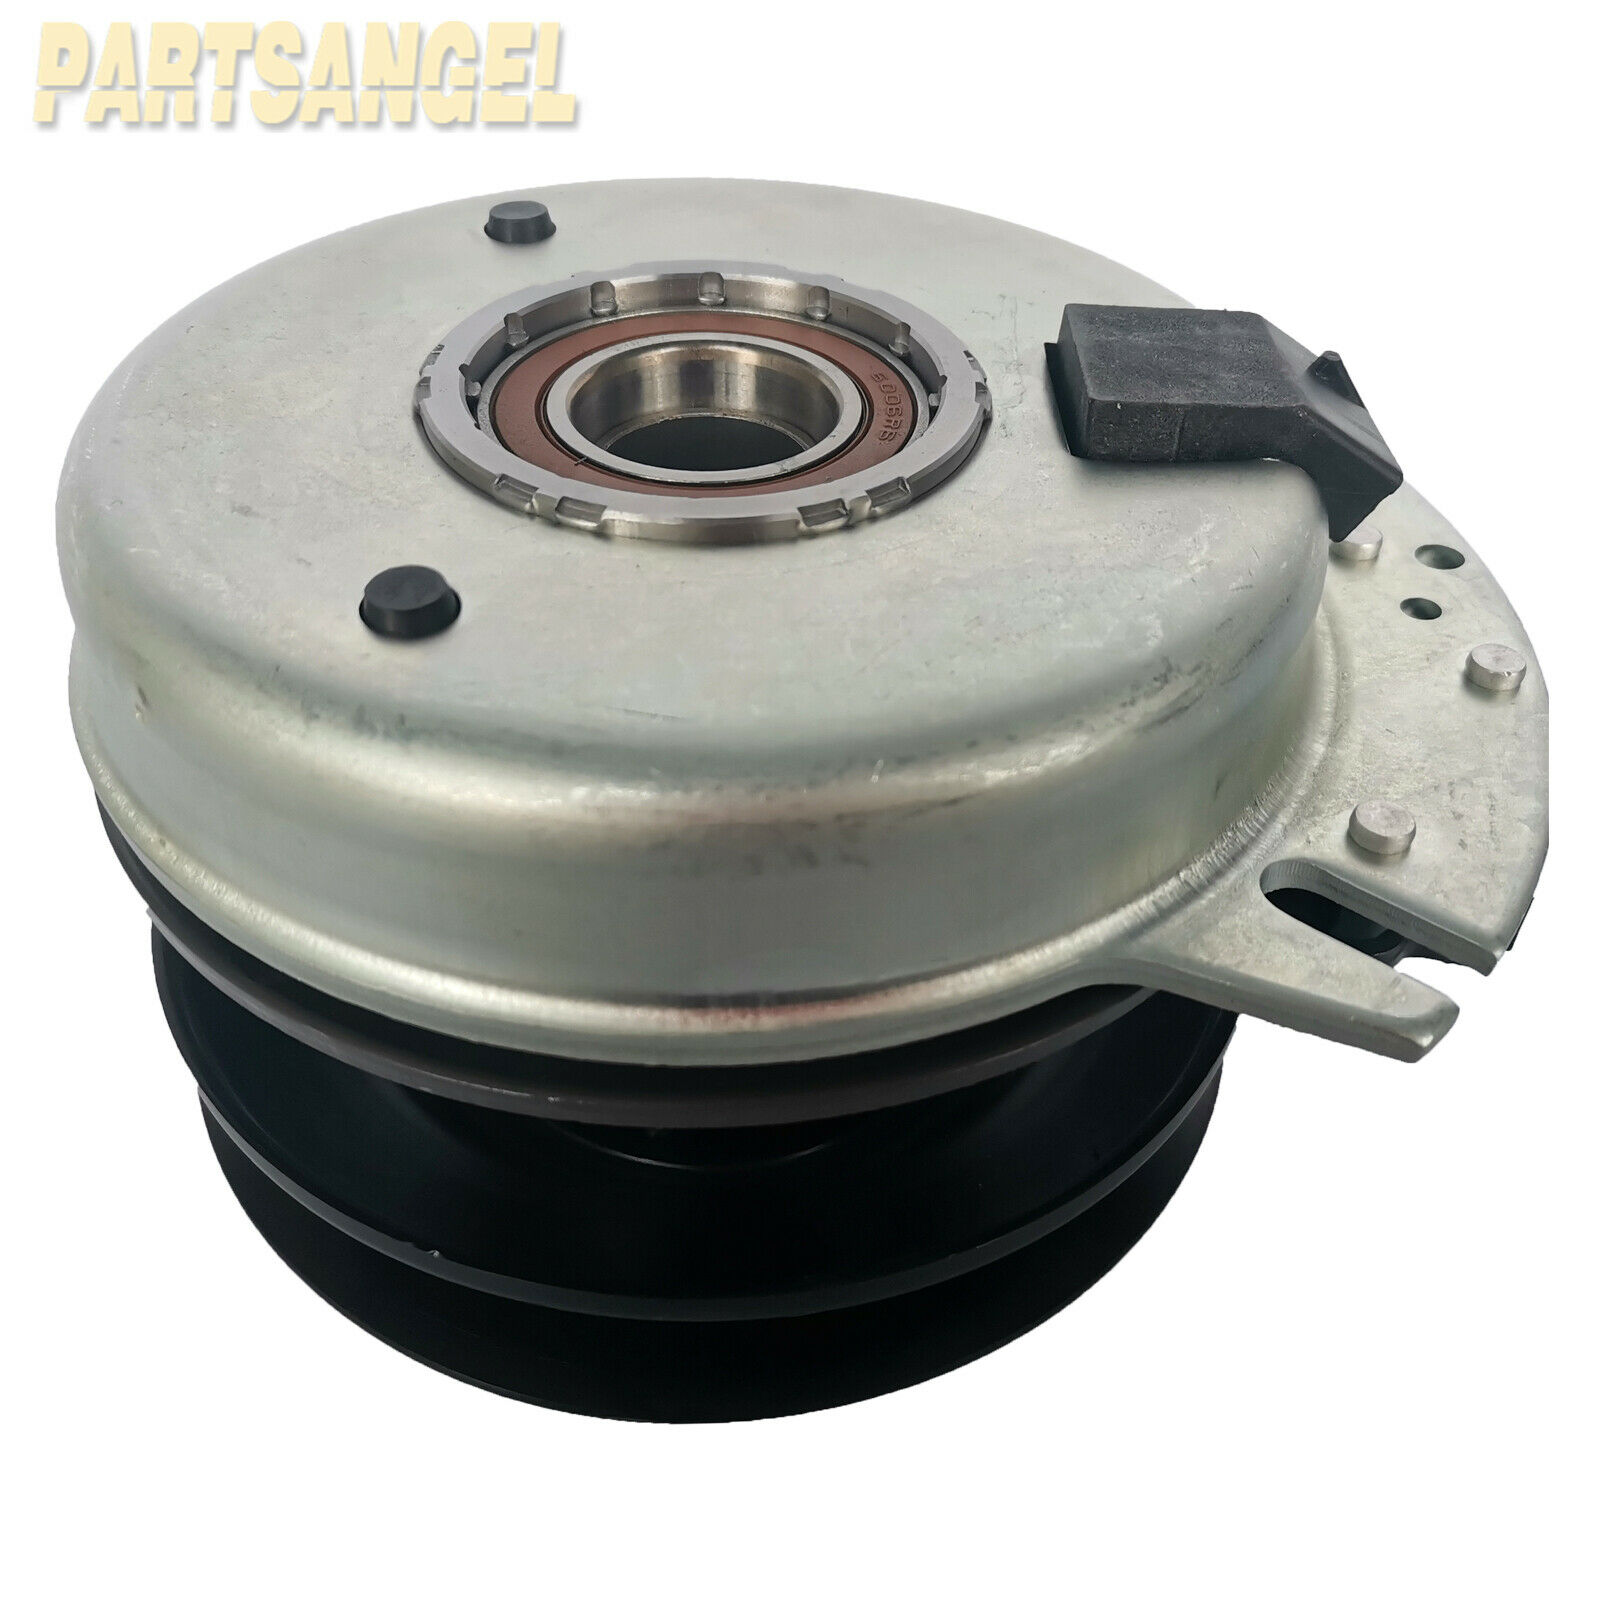 Pto Clutch For Lawn Cub Cadet Slt1554 Lt1045 Lt1042 Lt1046 Lt1050 Slt1550 1 Of 5free Shipping